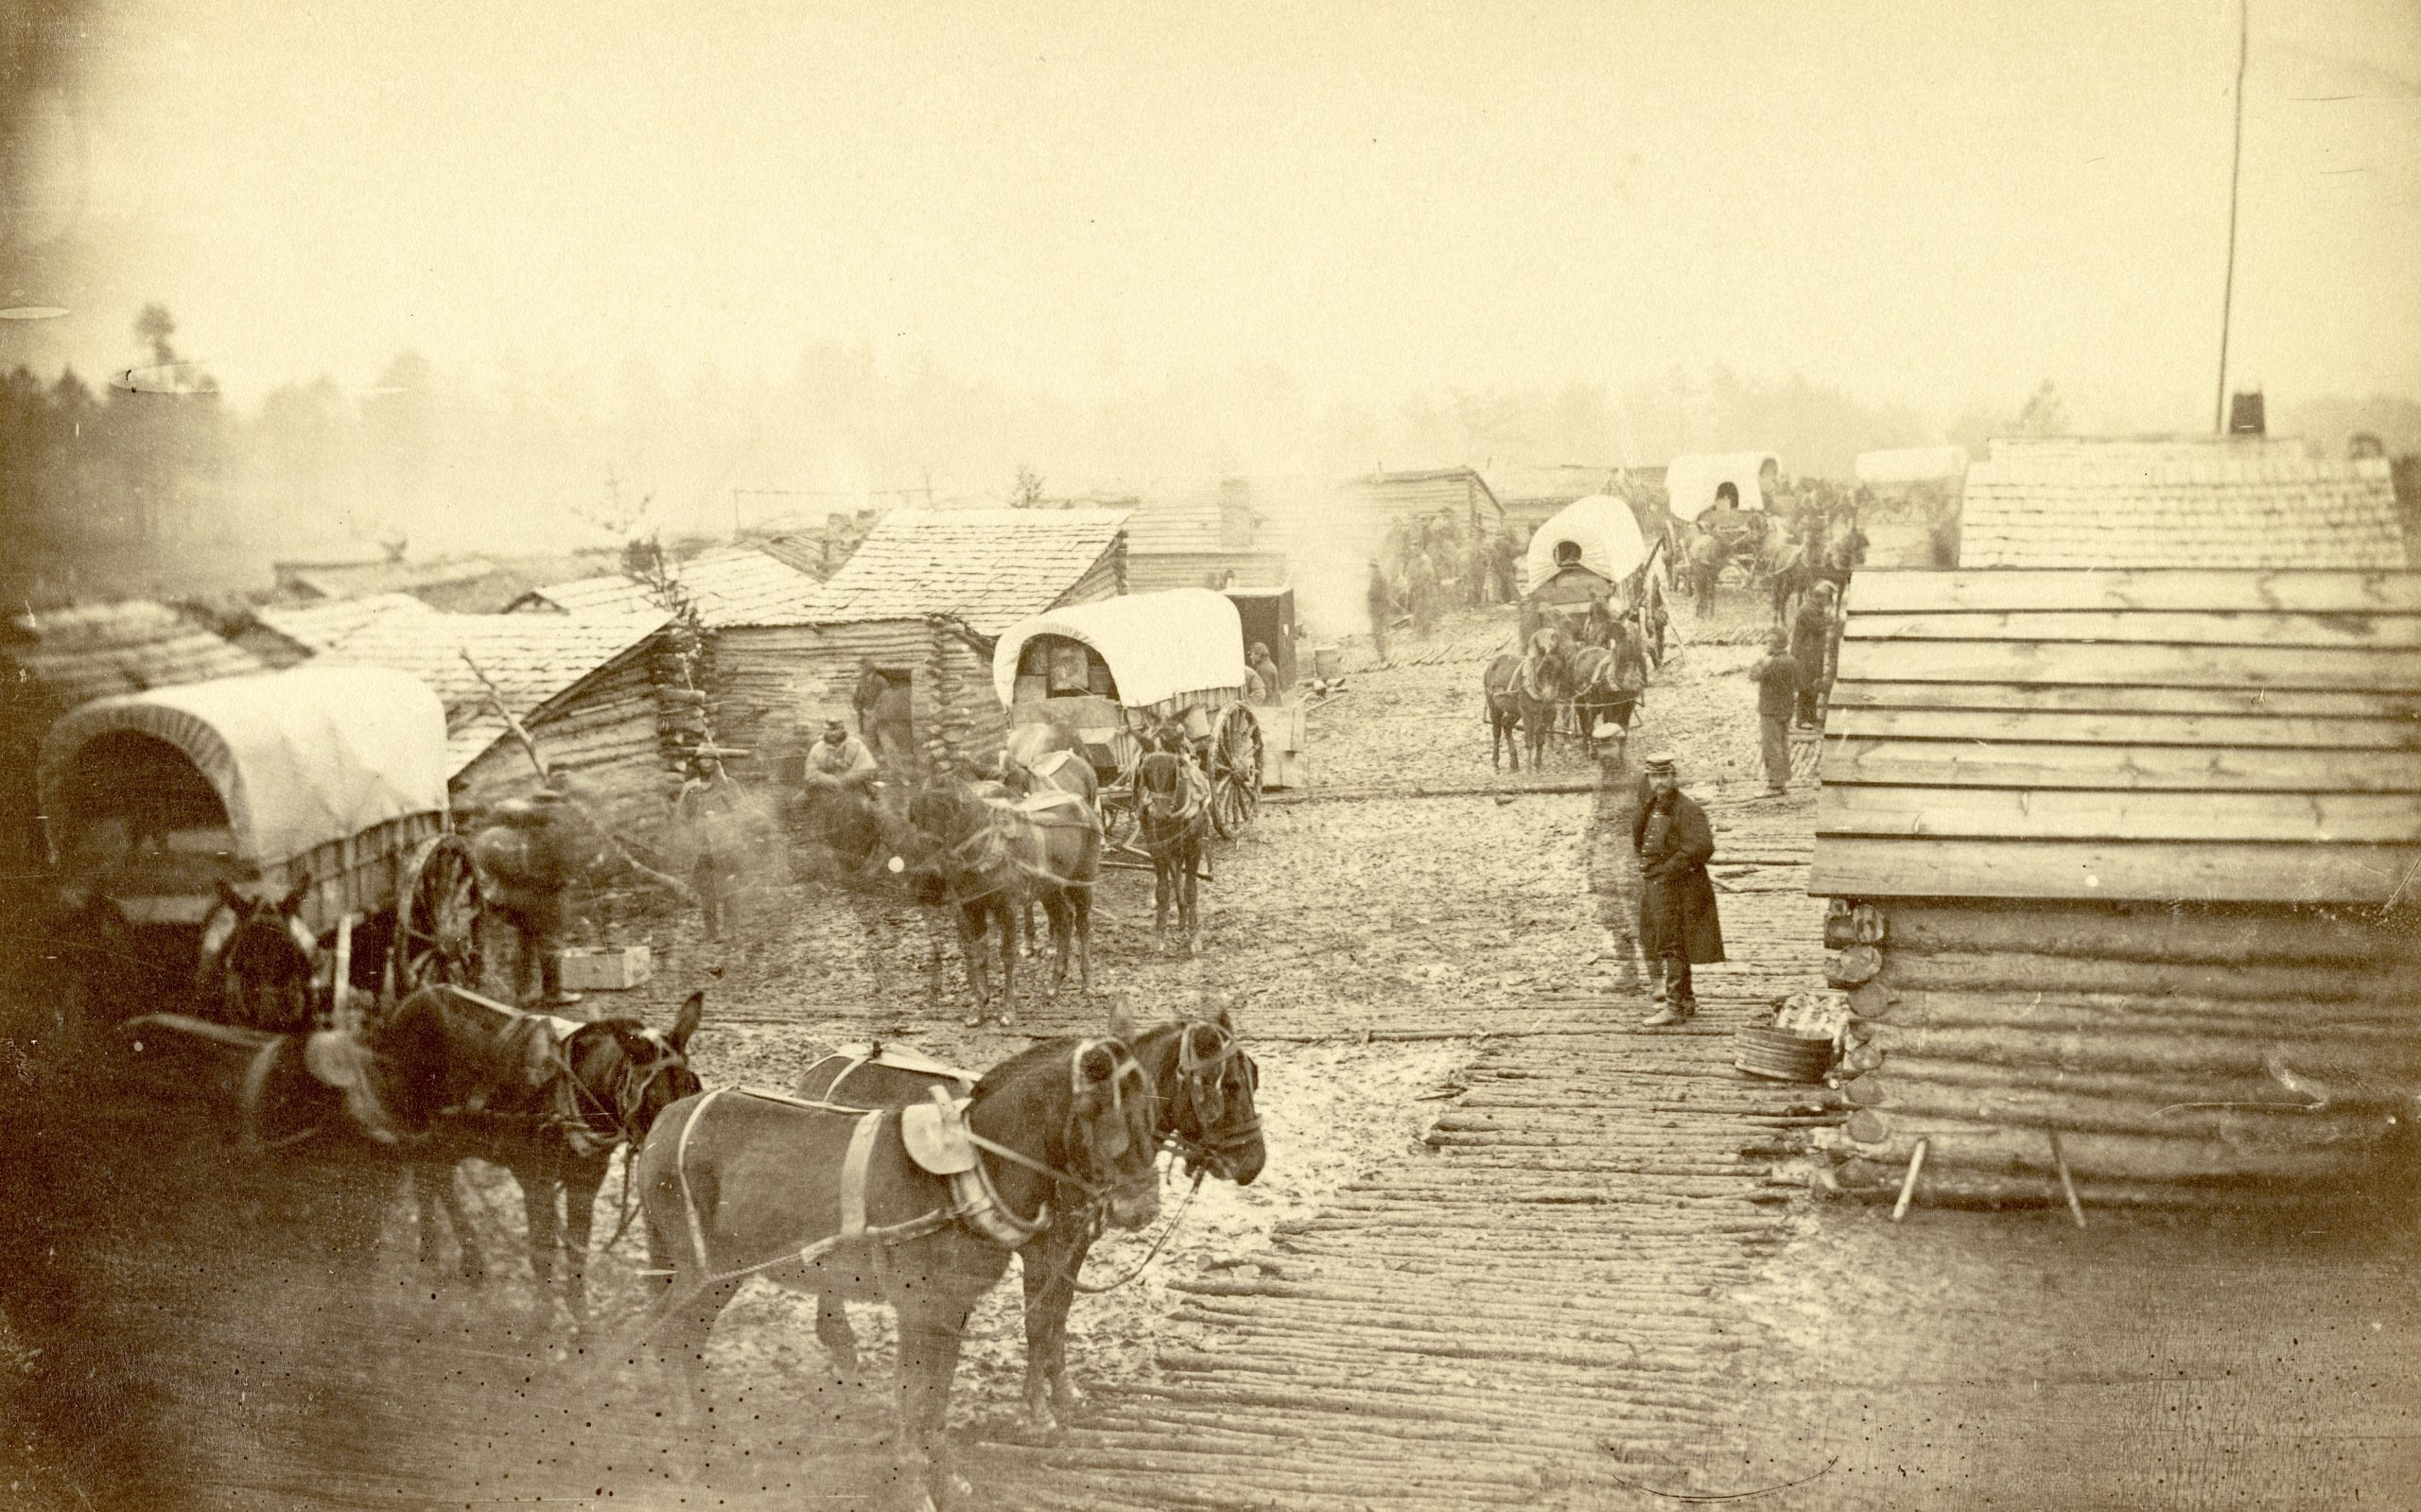 Camp of Union Forces at Centreville During Winter 1861